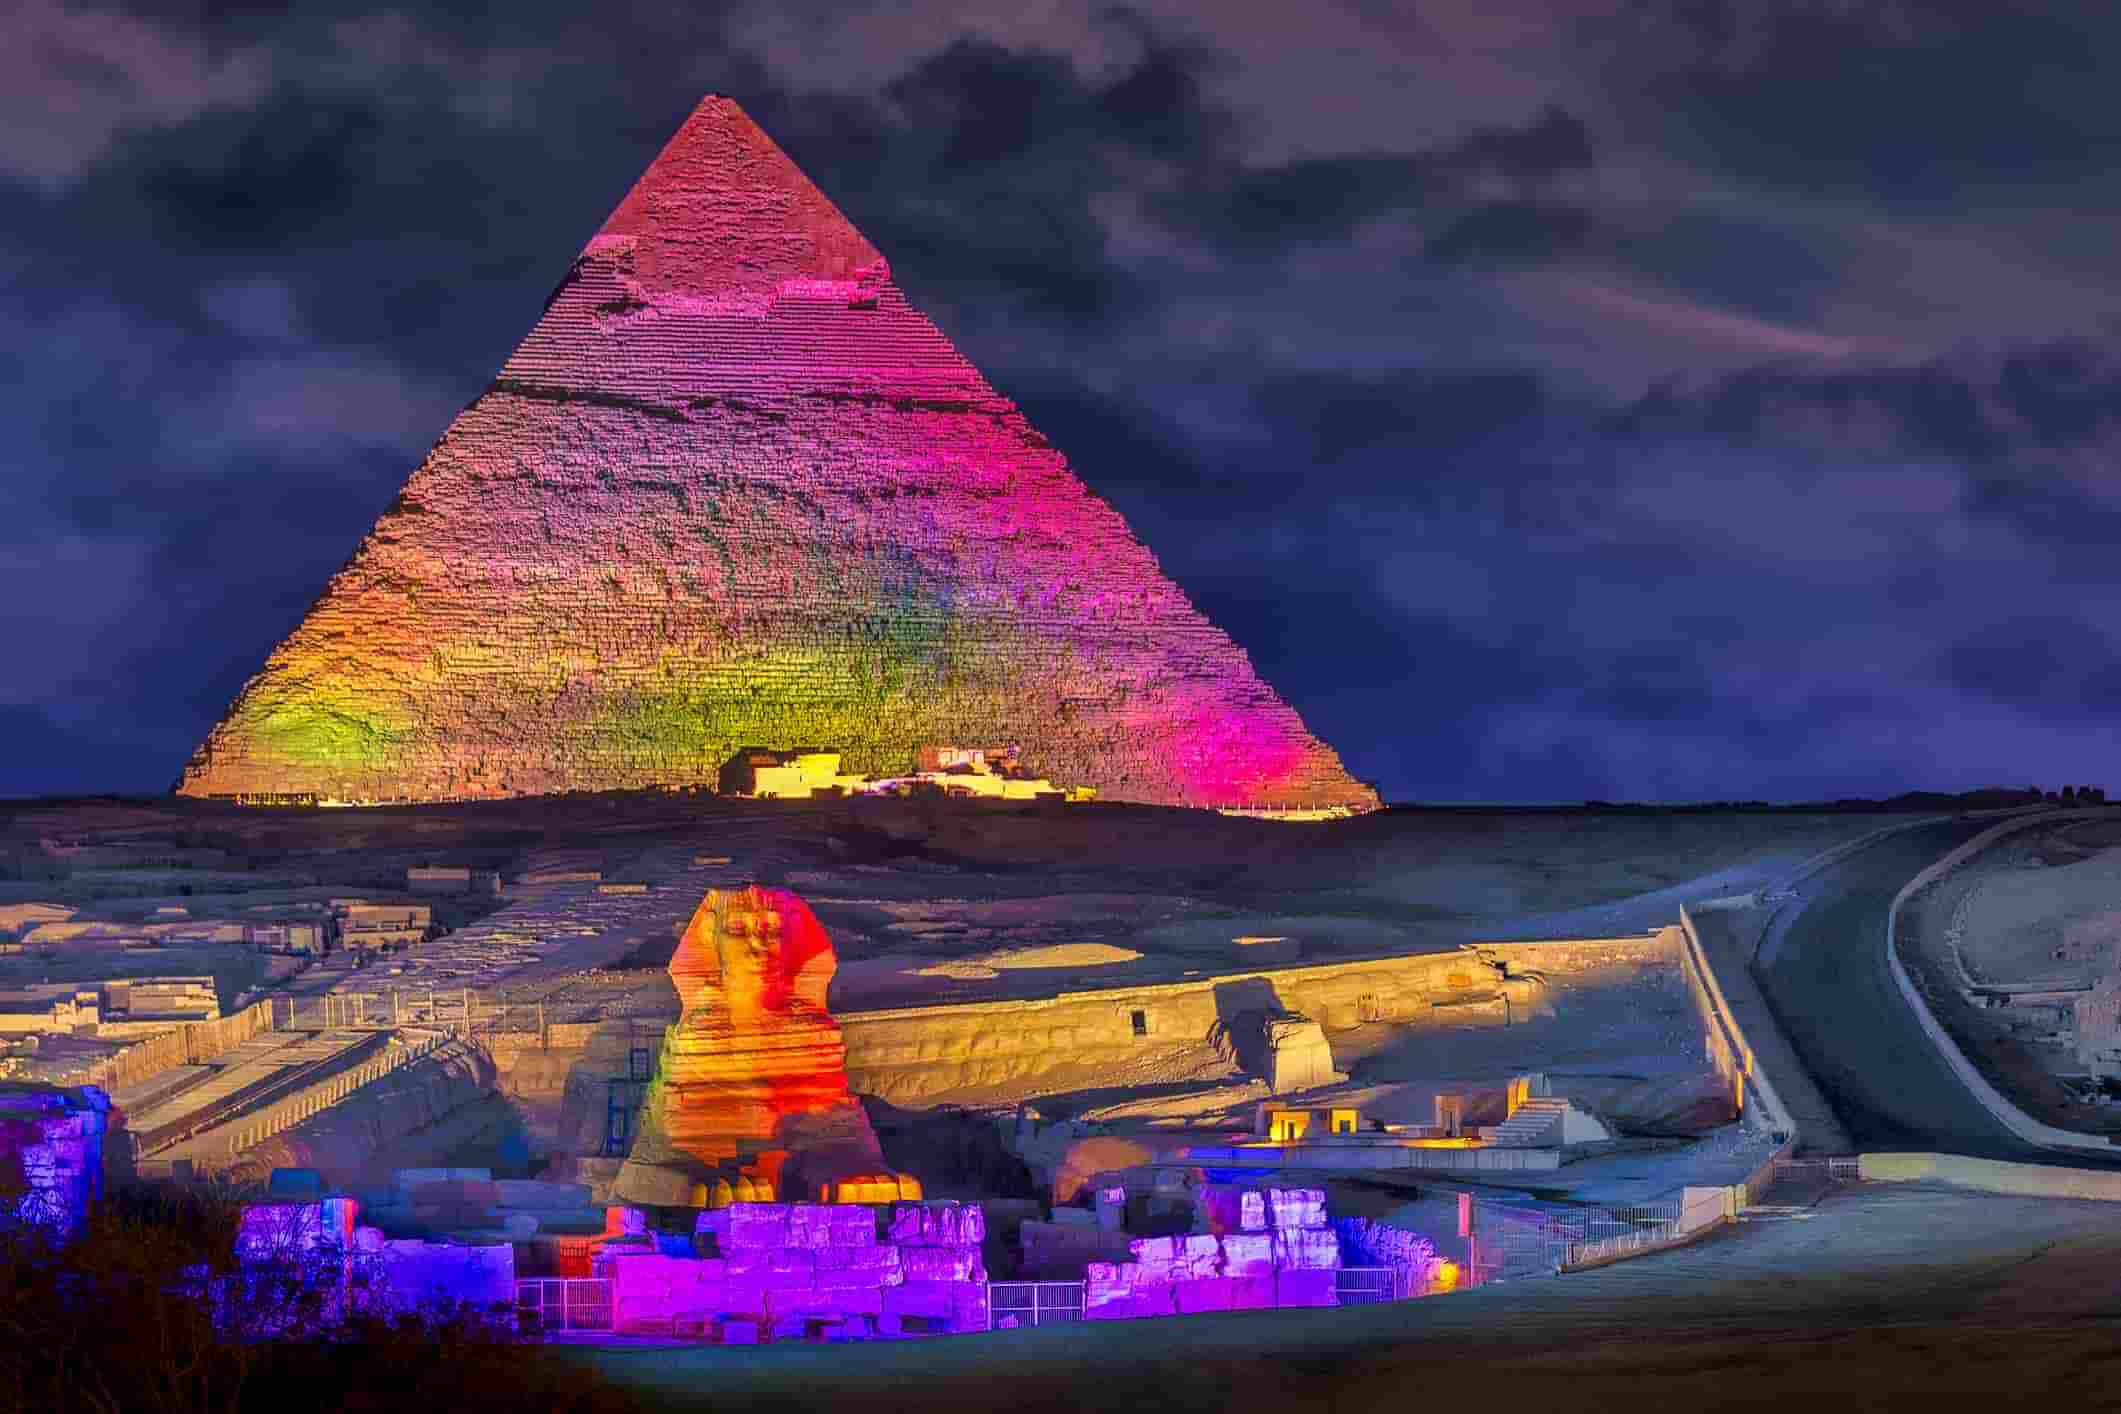 pyramids of Giza in Egypt at night